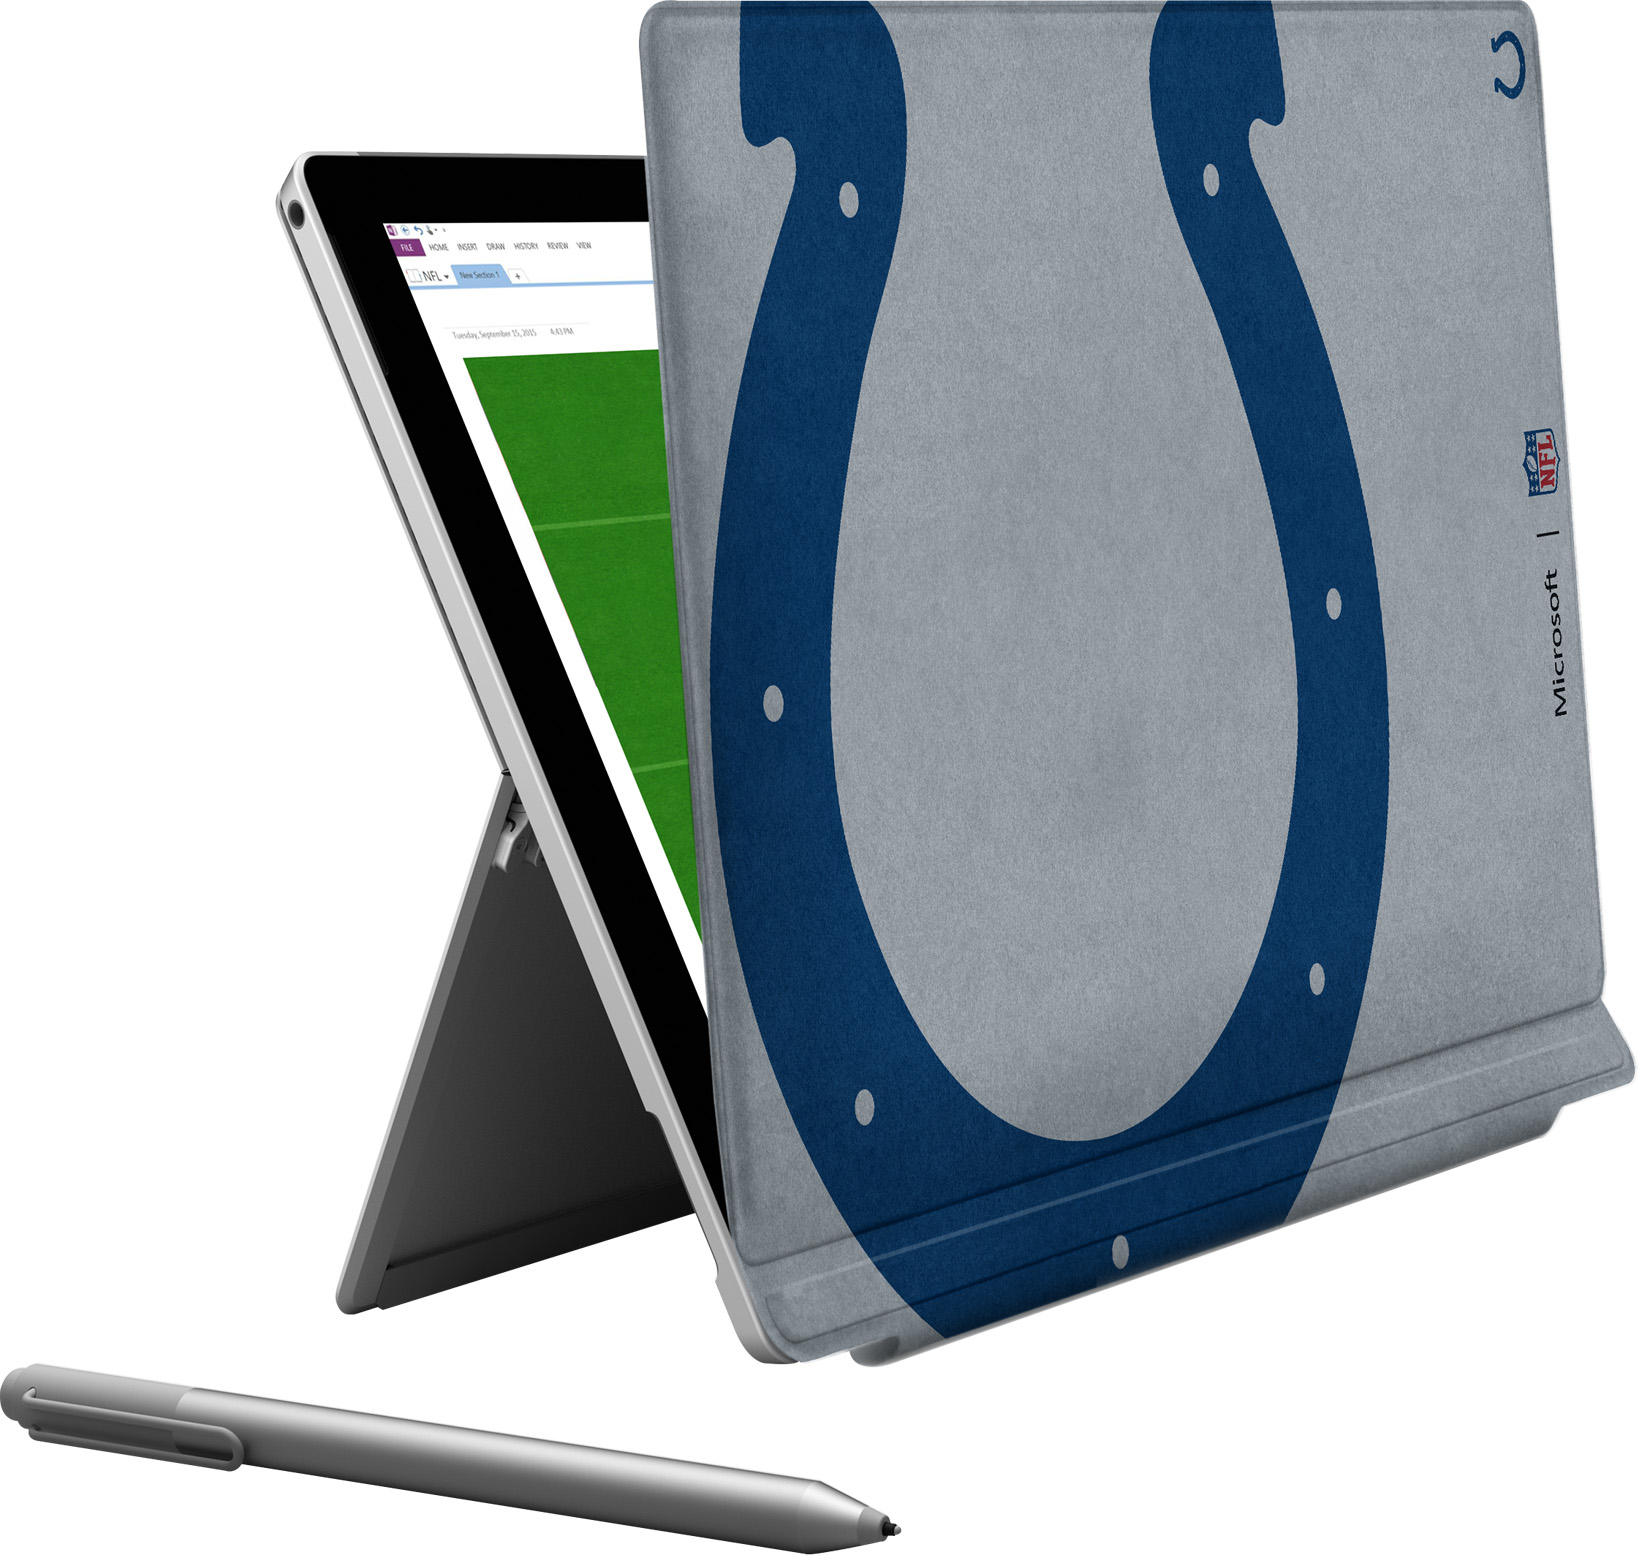 Microsoft Surface Pro 4 Indianapolis Colts Type Cover